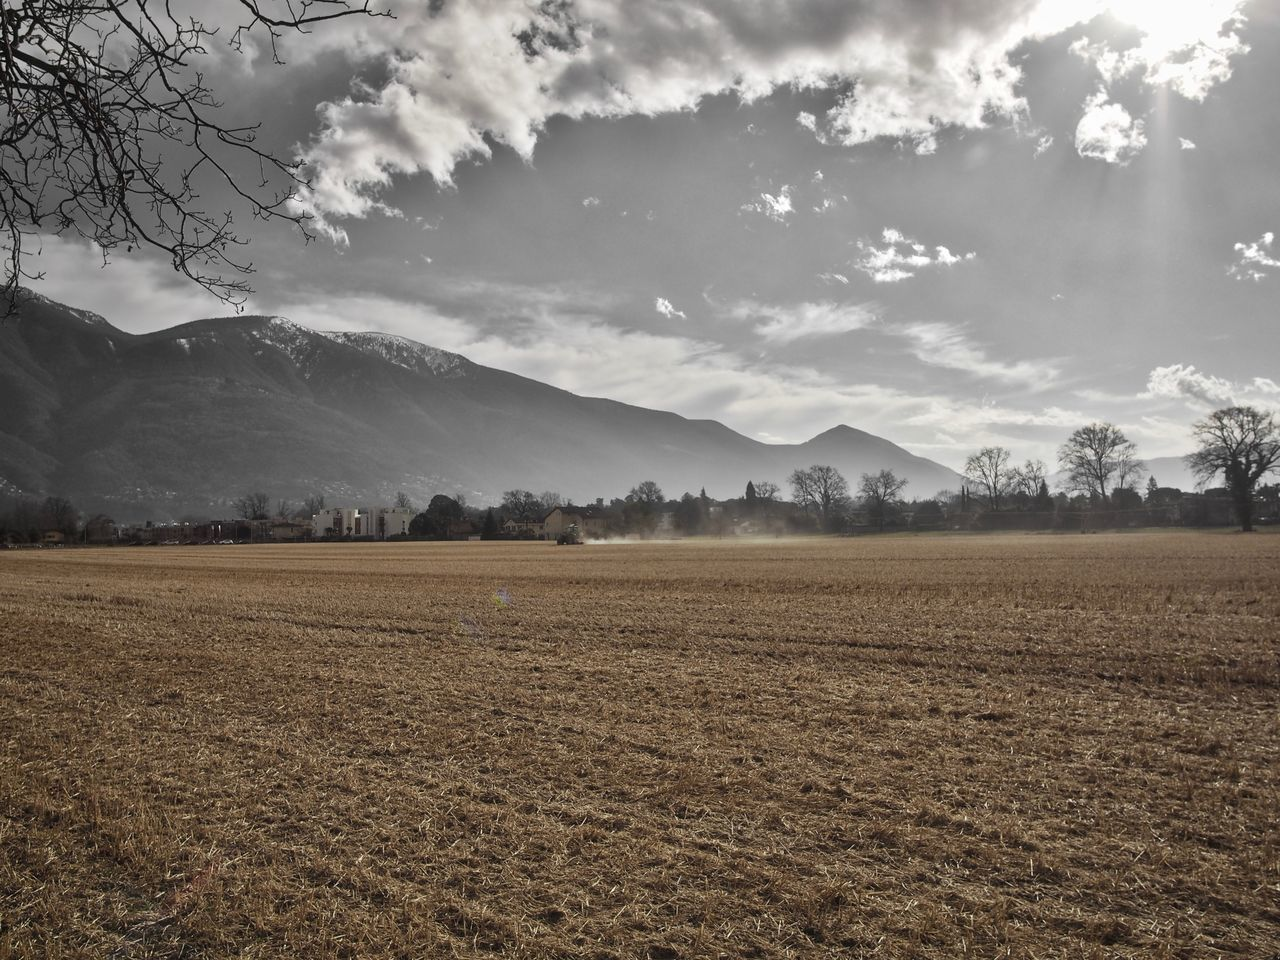 agriculture, cloud - sky, mountain, landscape, sky, growth, no people, tree, nature, outdoors, day